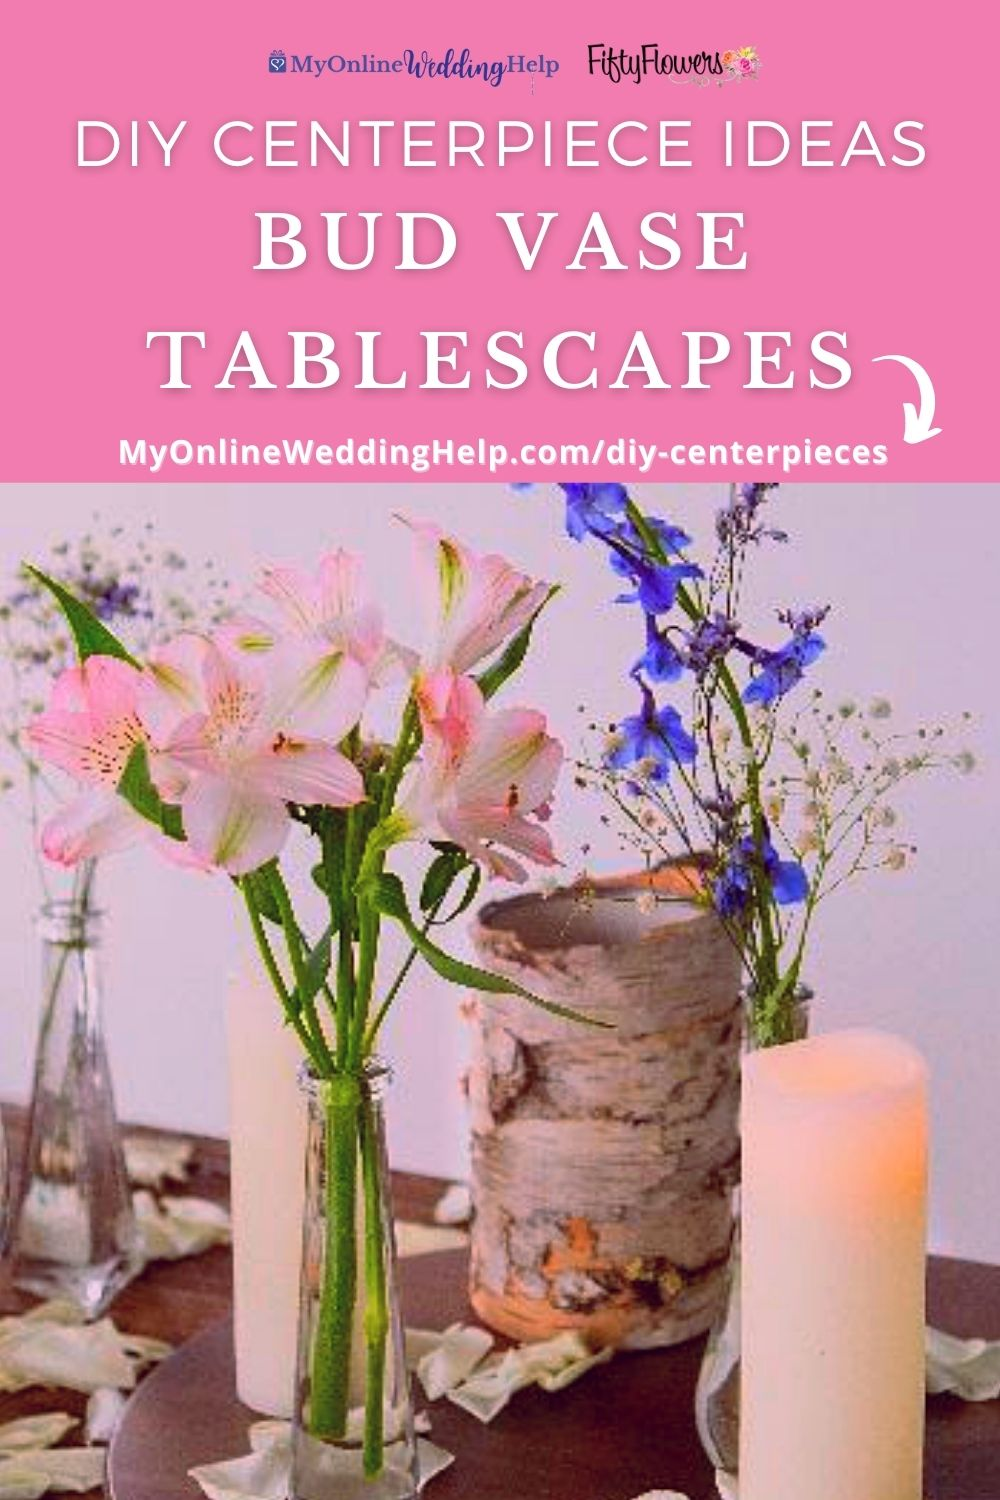 DIY Centerpiece Ideas. Bud Vase Tablescapes on a pin background. With photo of flowers in bud vases, candles, and bark candleholders on a table.